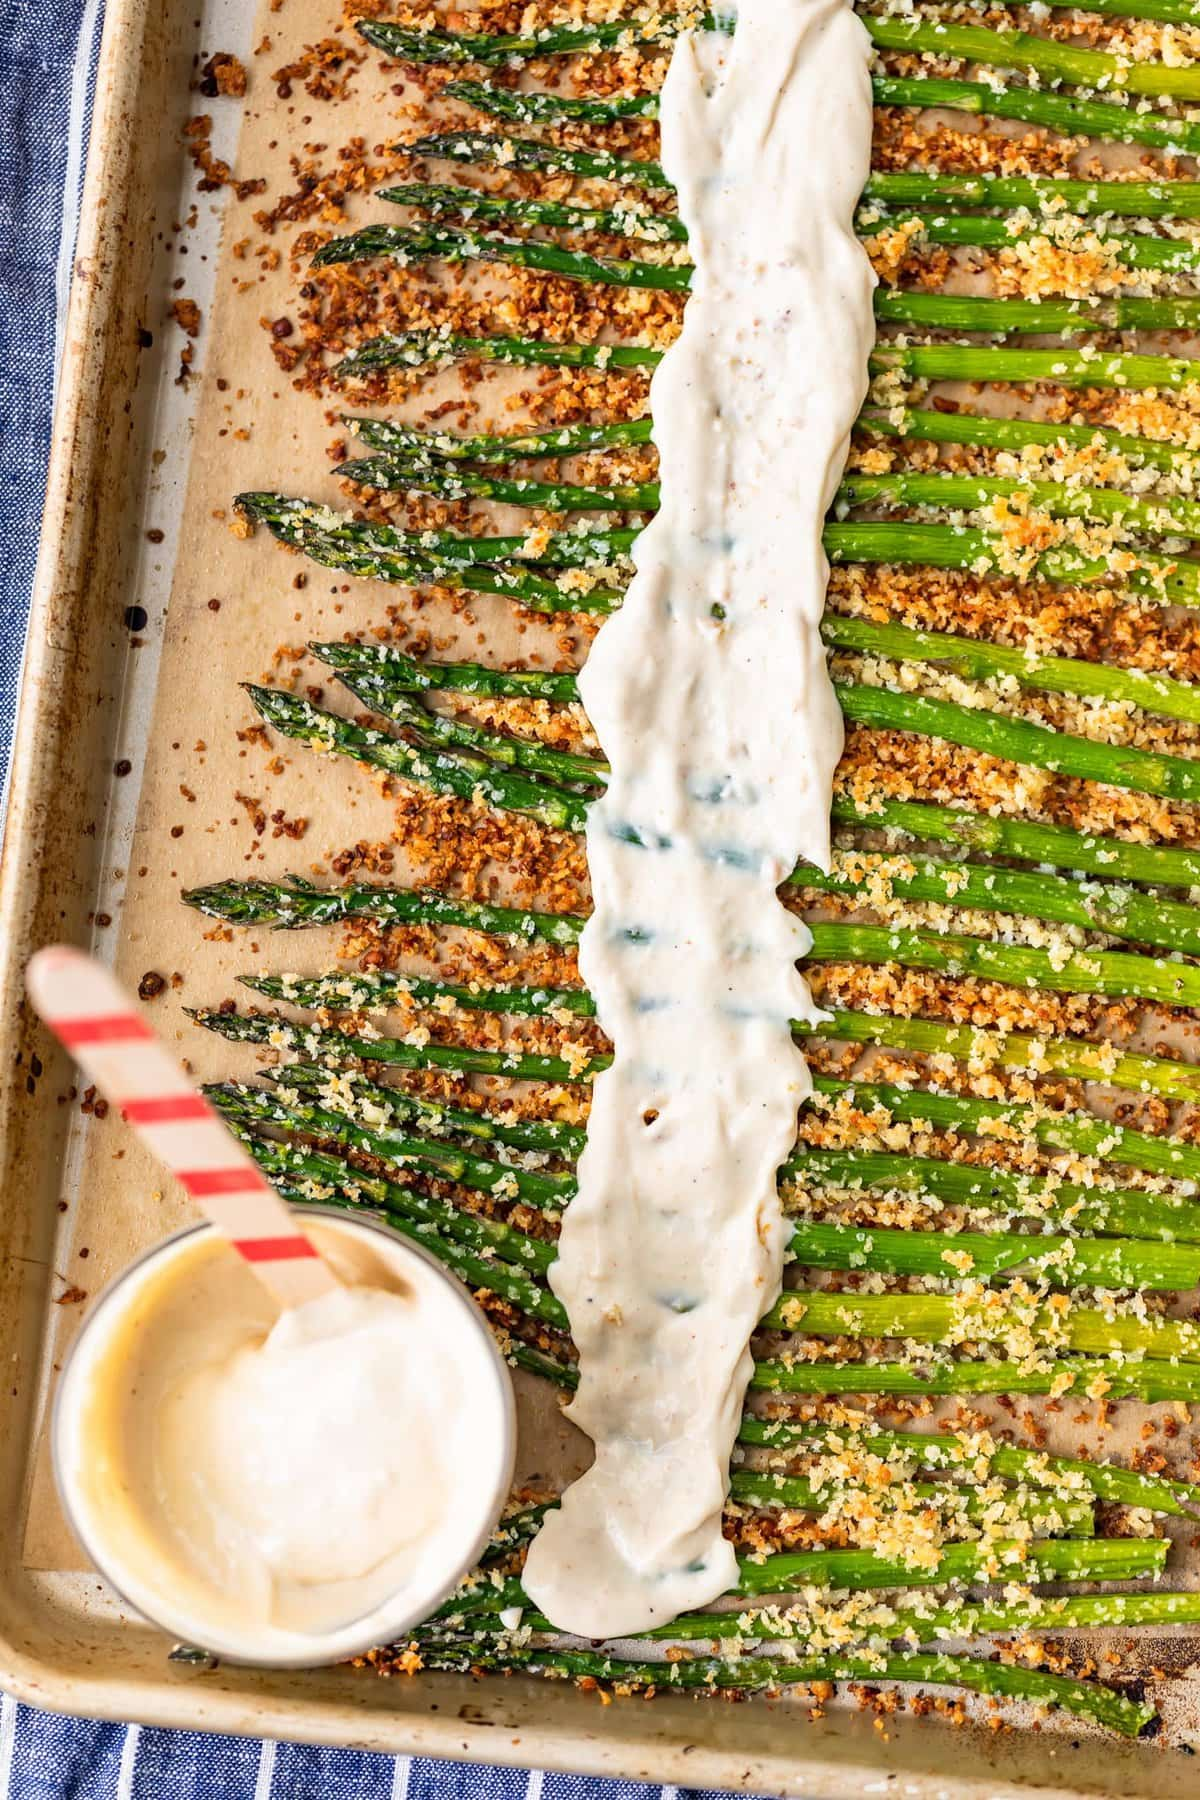 garlic aioli spread over roasted asparagus